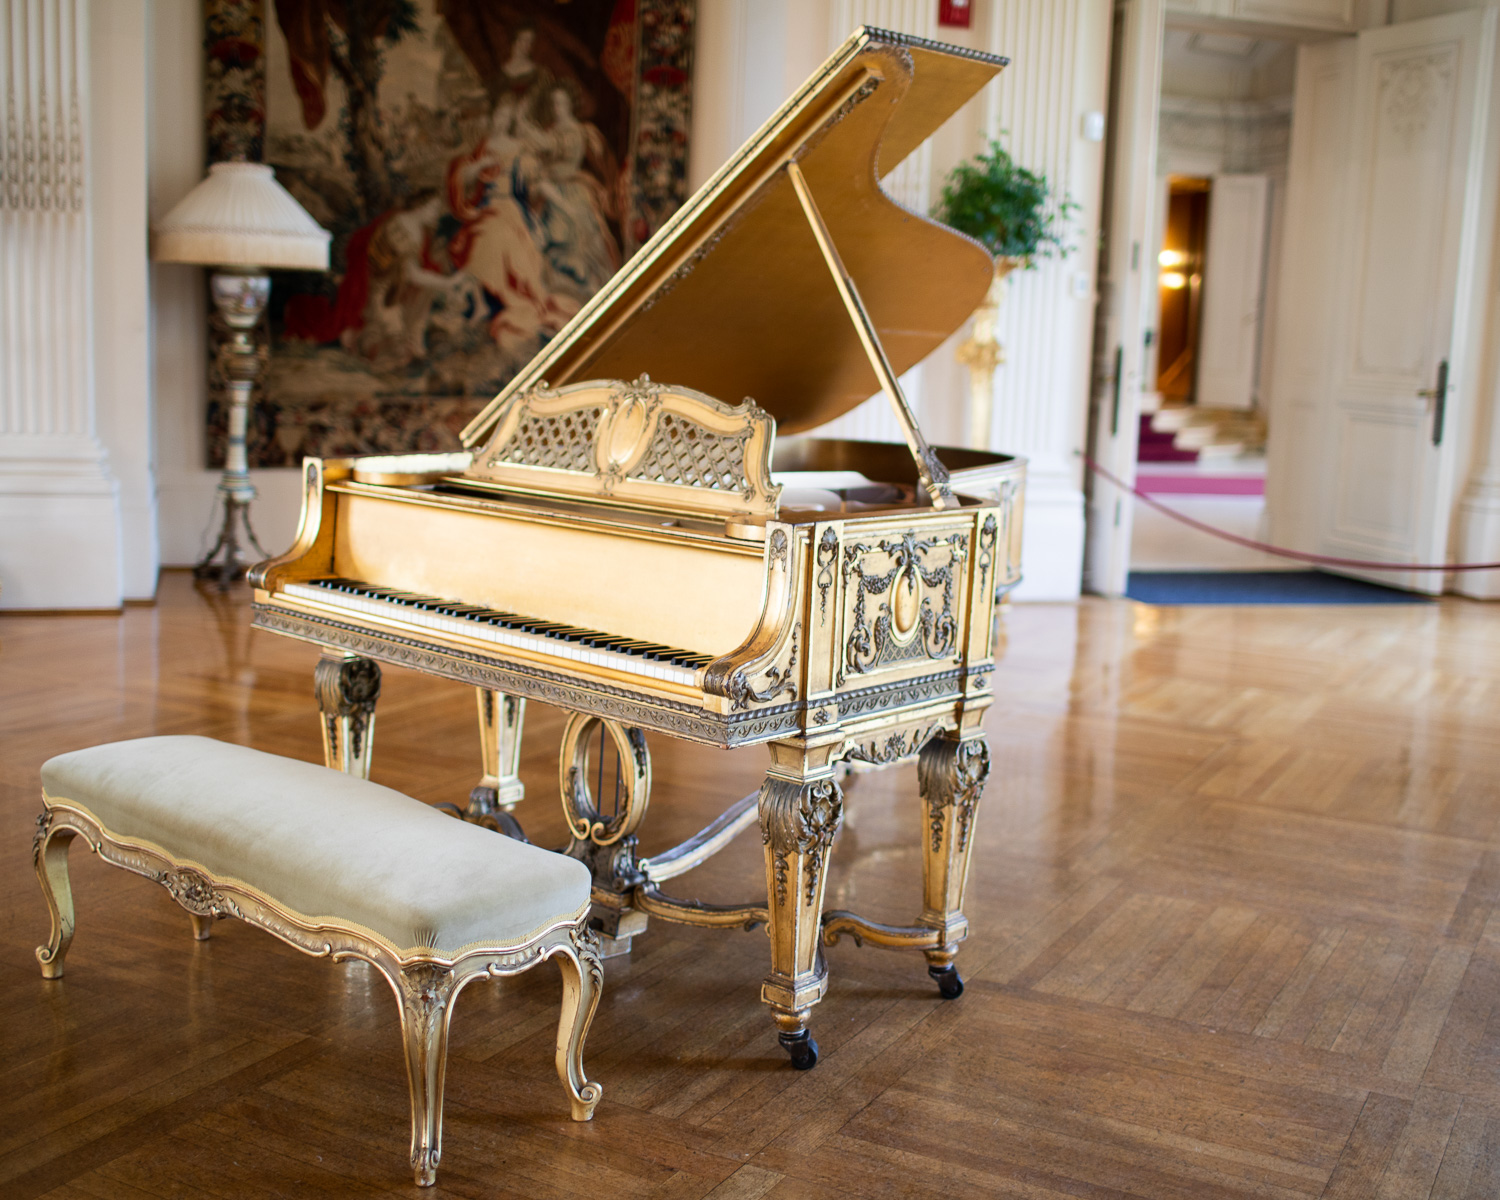 A grand piano in the ballroom.